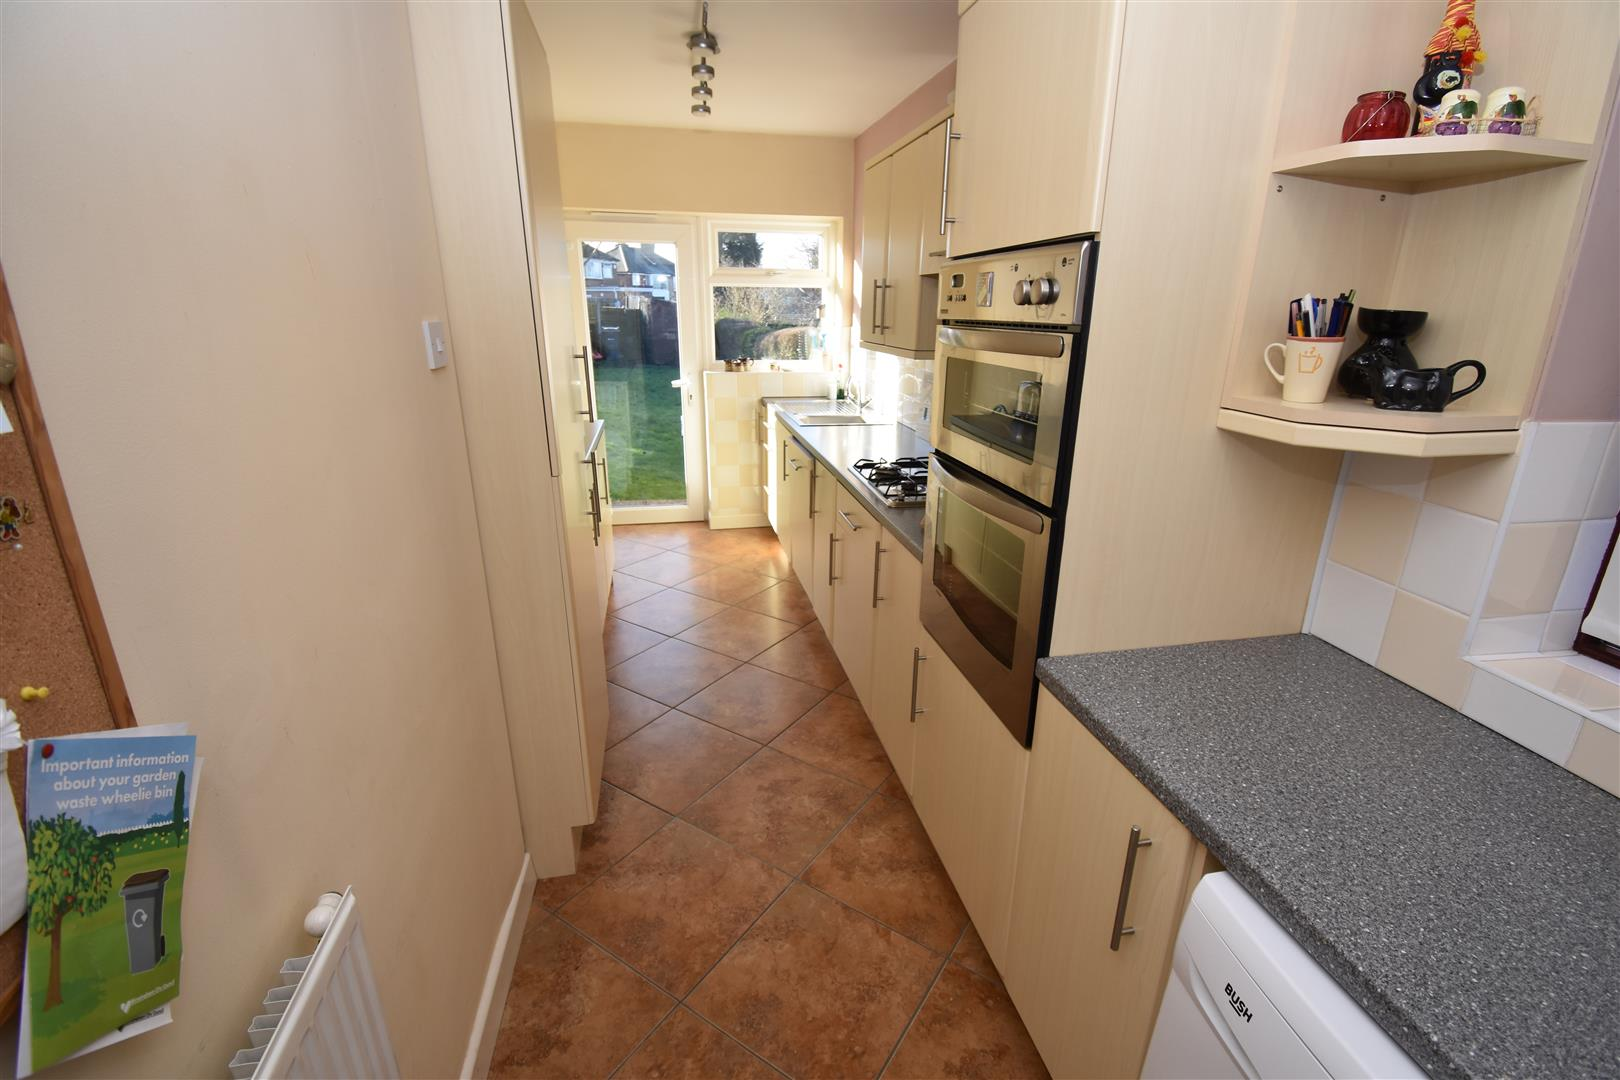 3 bed house for sale in Bromford Road, Hodge Hill, Birmingham B36 8HR 6